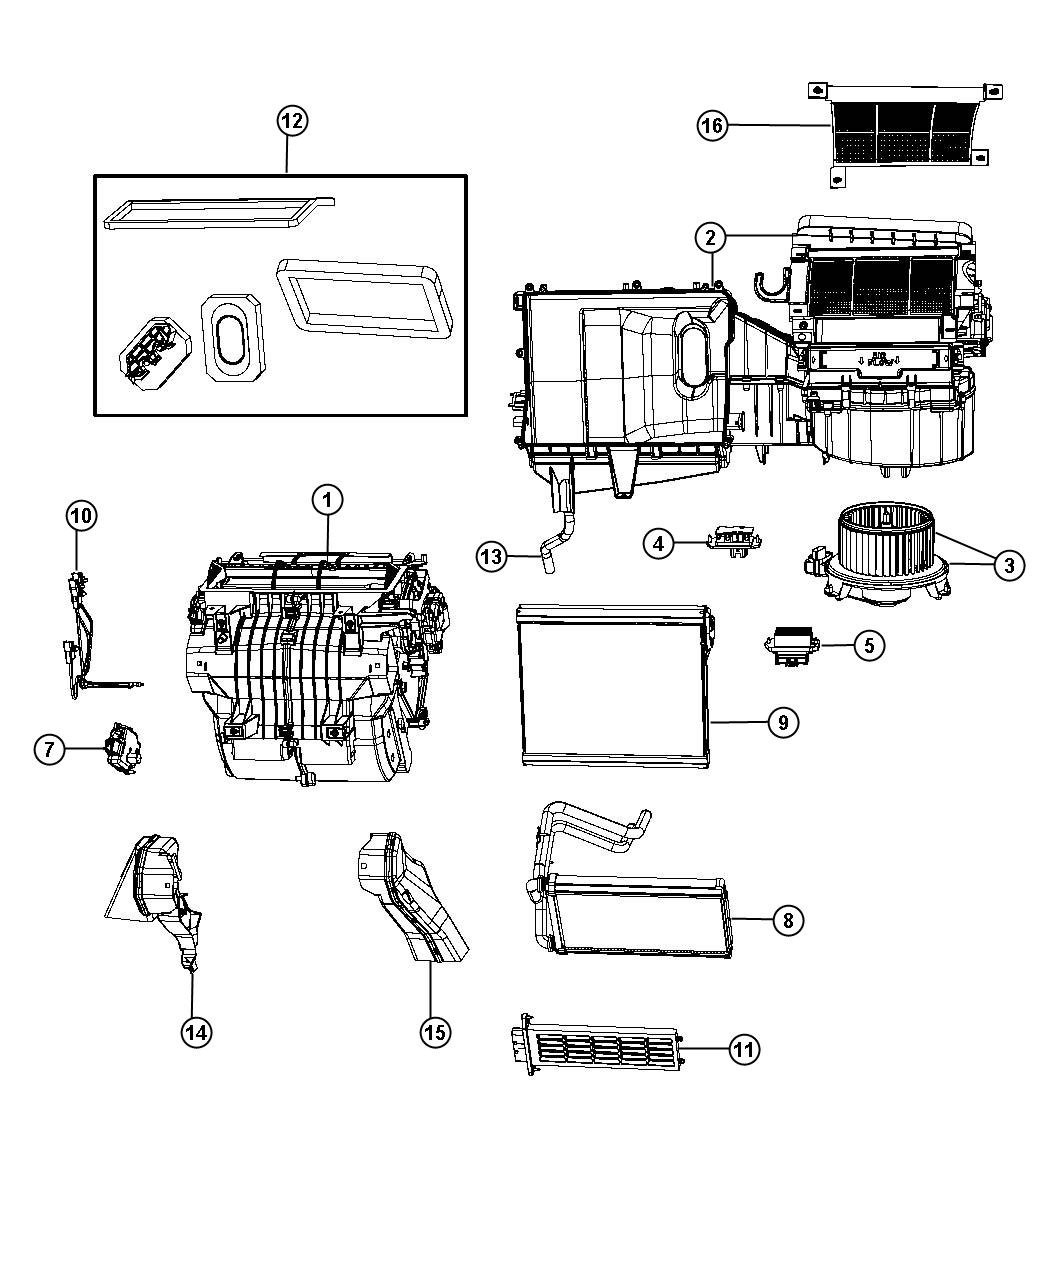 1994 chrysler lebaron fuse box diagram on fuse box diagram dodge